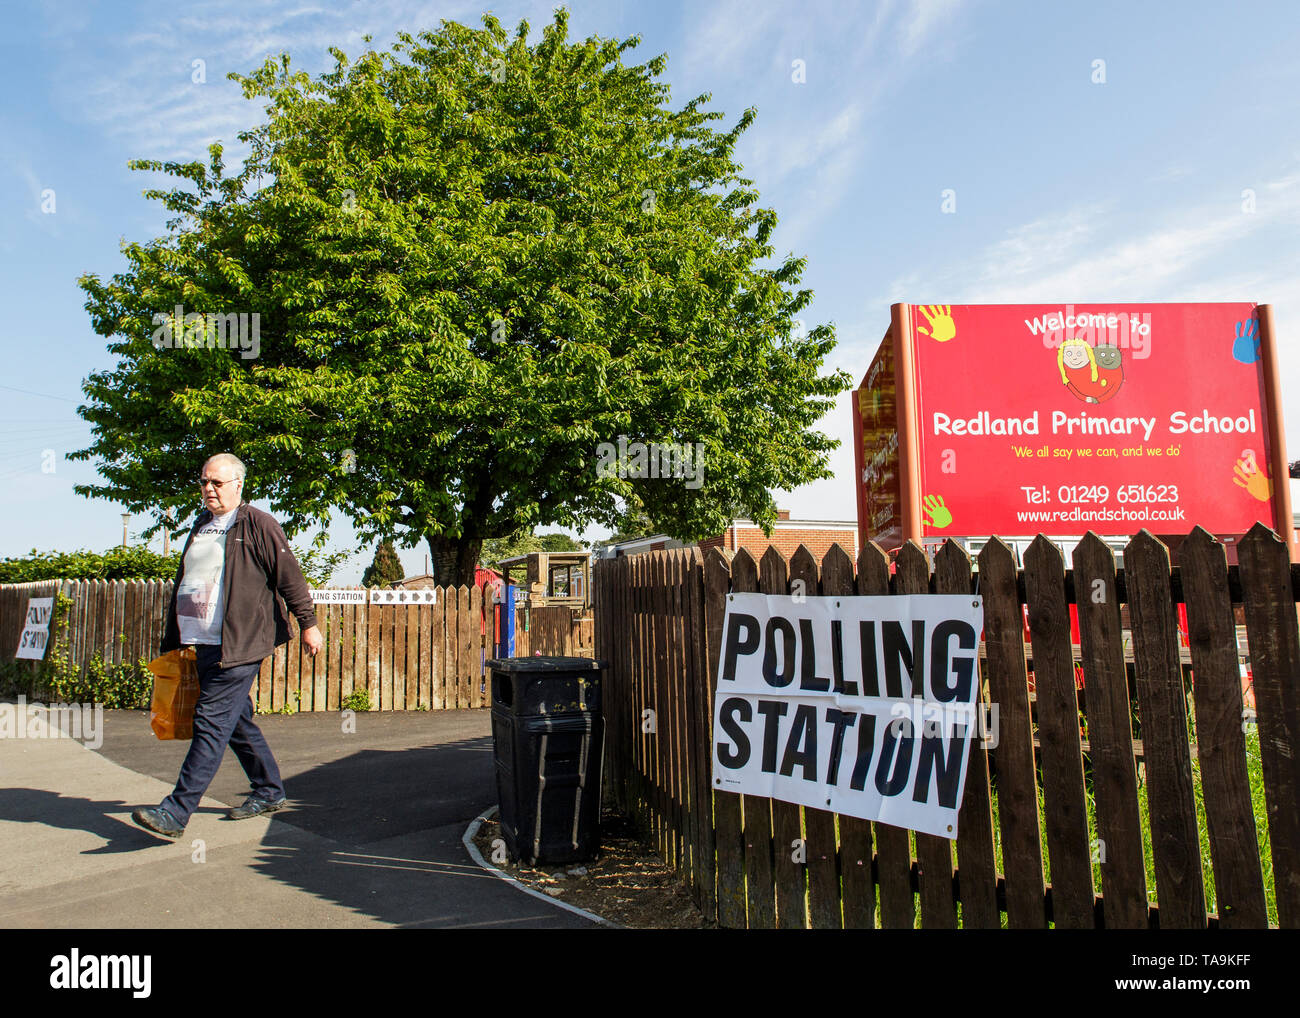 Chippenham, UK. 23rd May, 2019. A man going to vote in the 2019 European Parliament elections is pictured leaving a polling station situated inside a school in Chippenham, Wiltshire. Credit: Lynchpics/Alamy Live News - Stock Image